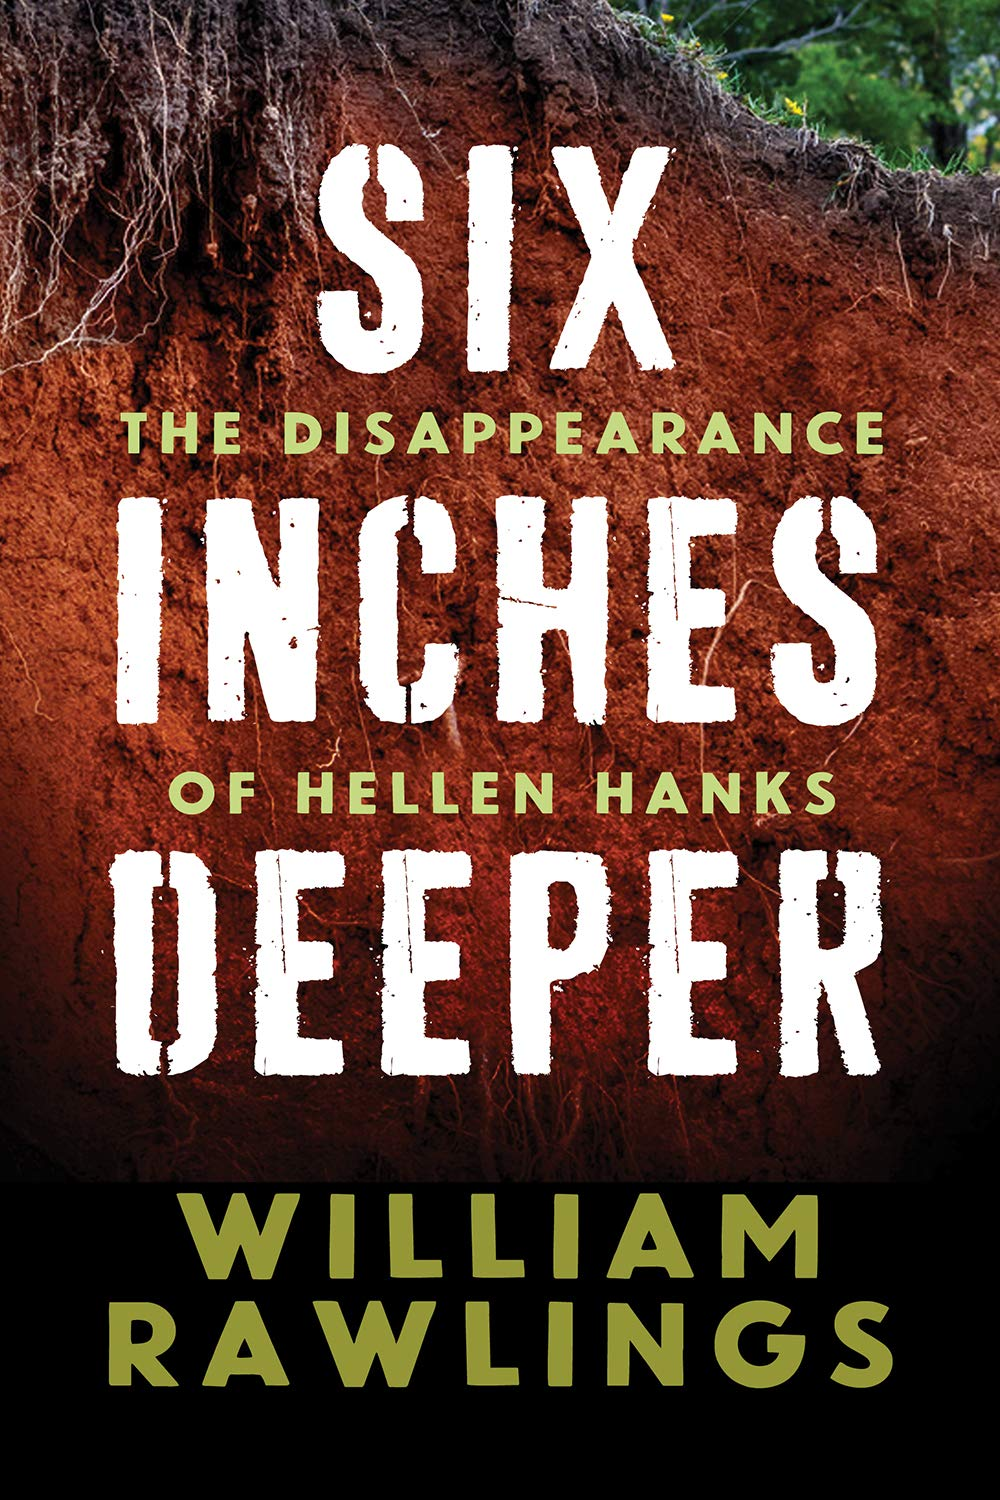 Six Inches Deeper: The Disappearance of Hellen Hanks